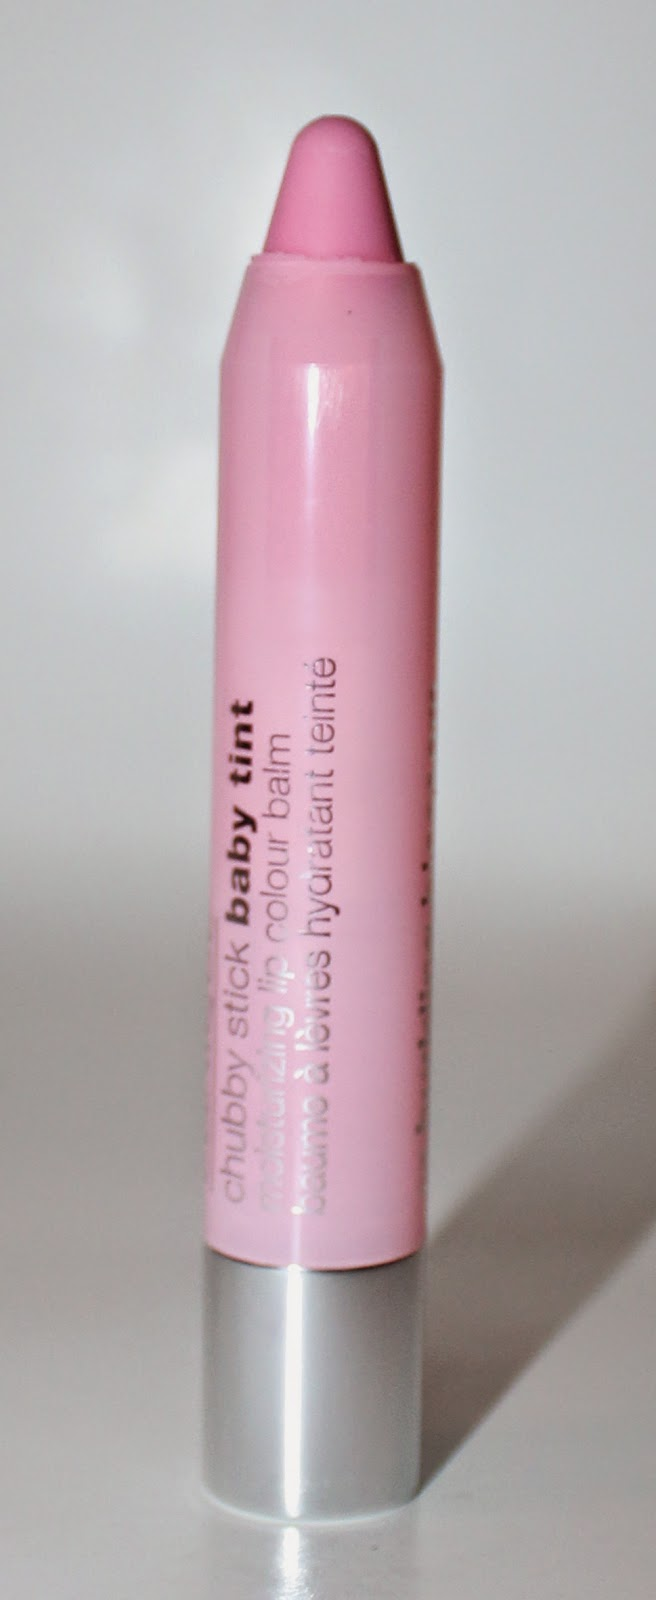 Clinique Chubby Stick Baby Tint Moisturizing Lip Colour Balm in Budding Blossom